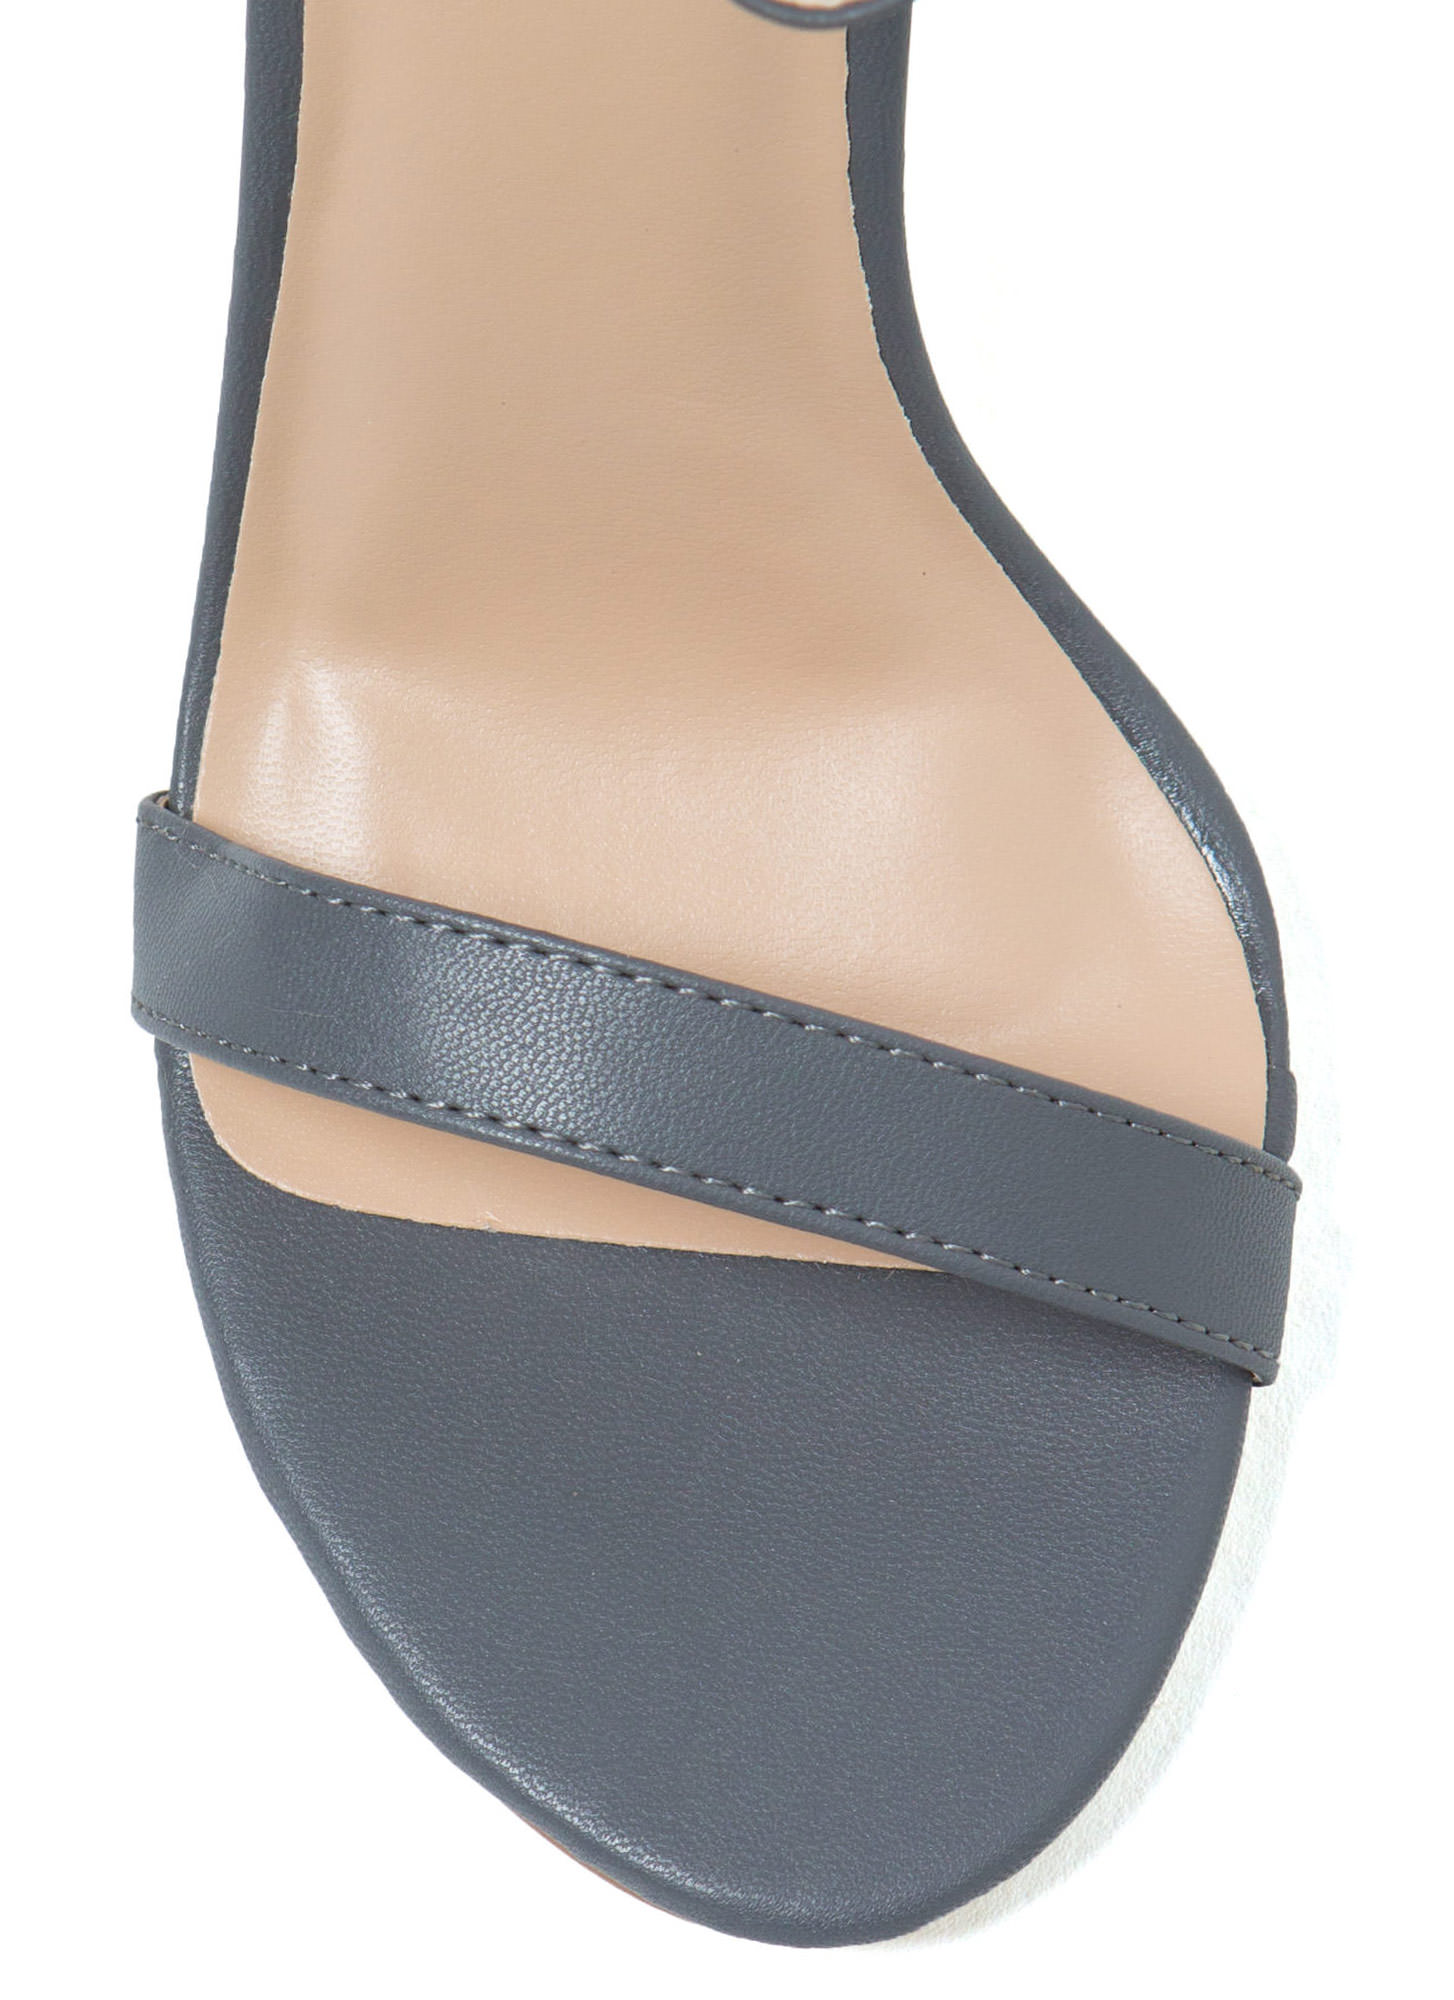 Less Is More Single-Strap Heels DKGREY